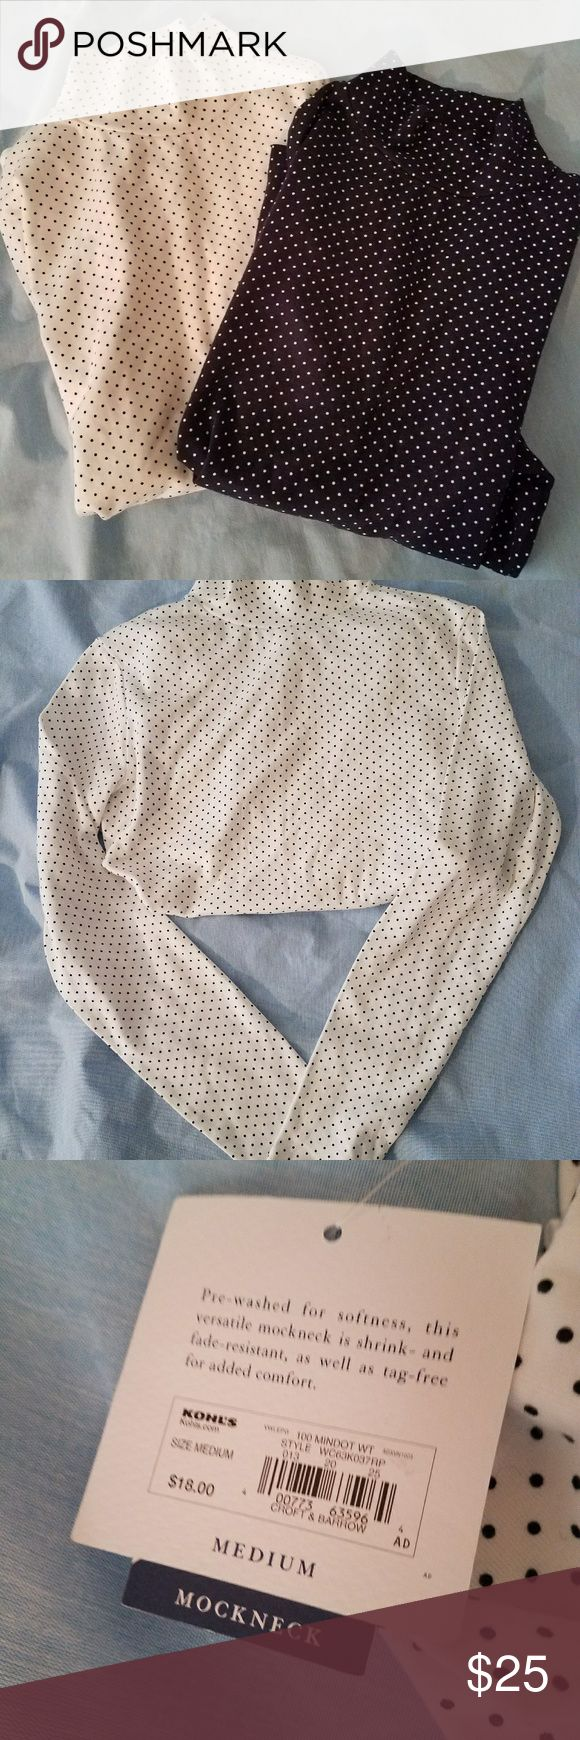 Long sleeve mock neck shirts Polka dot cotton pullover long sleeve shirt  One is white with black polka dots and the other is Blue with white polka dots. croft & barrow Tops Tees - Long Sleeve